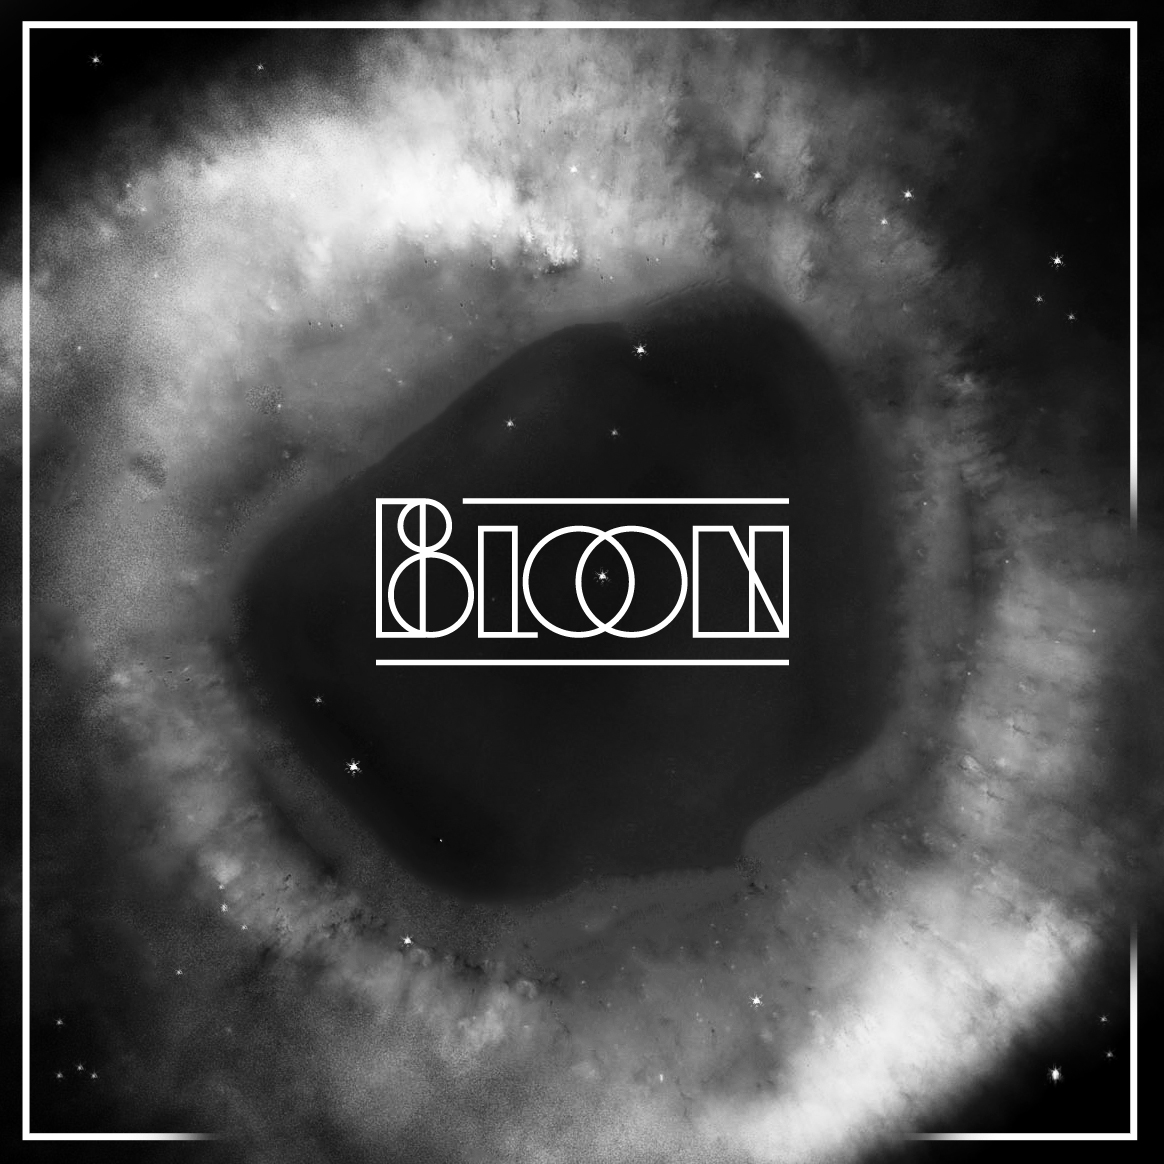 BLOON-COVER3